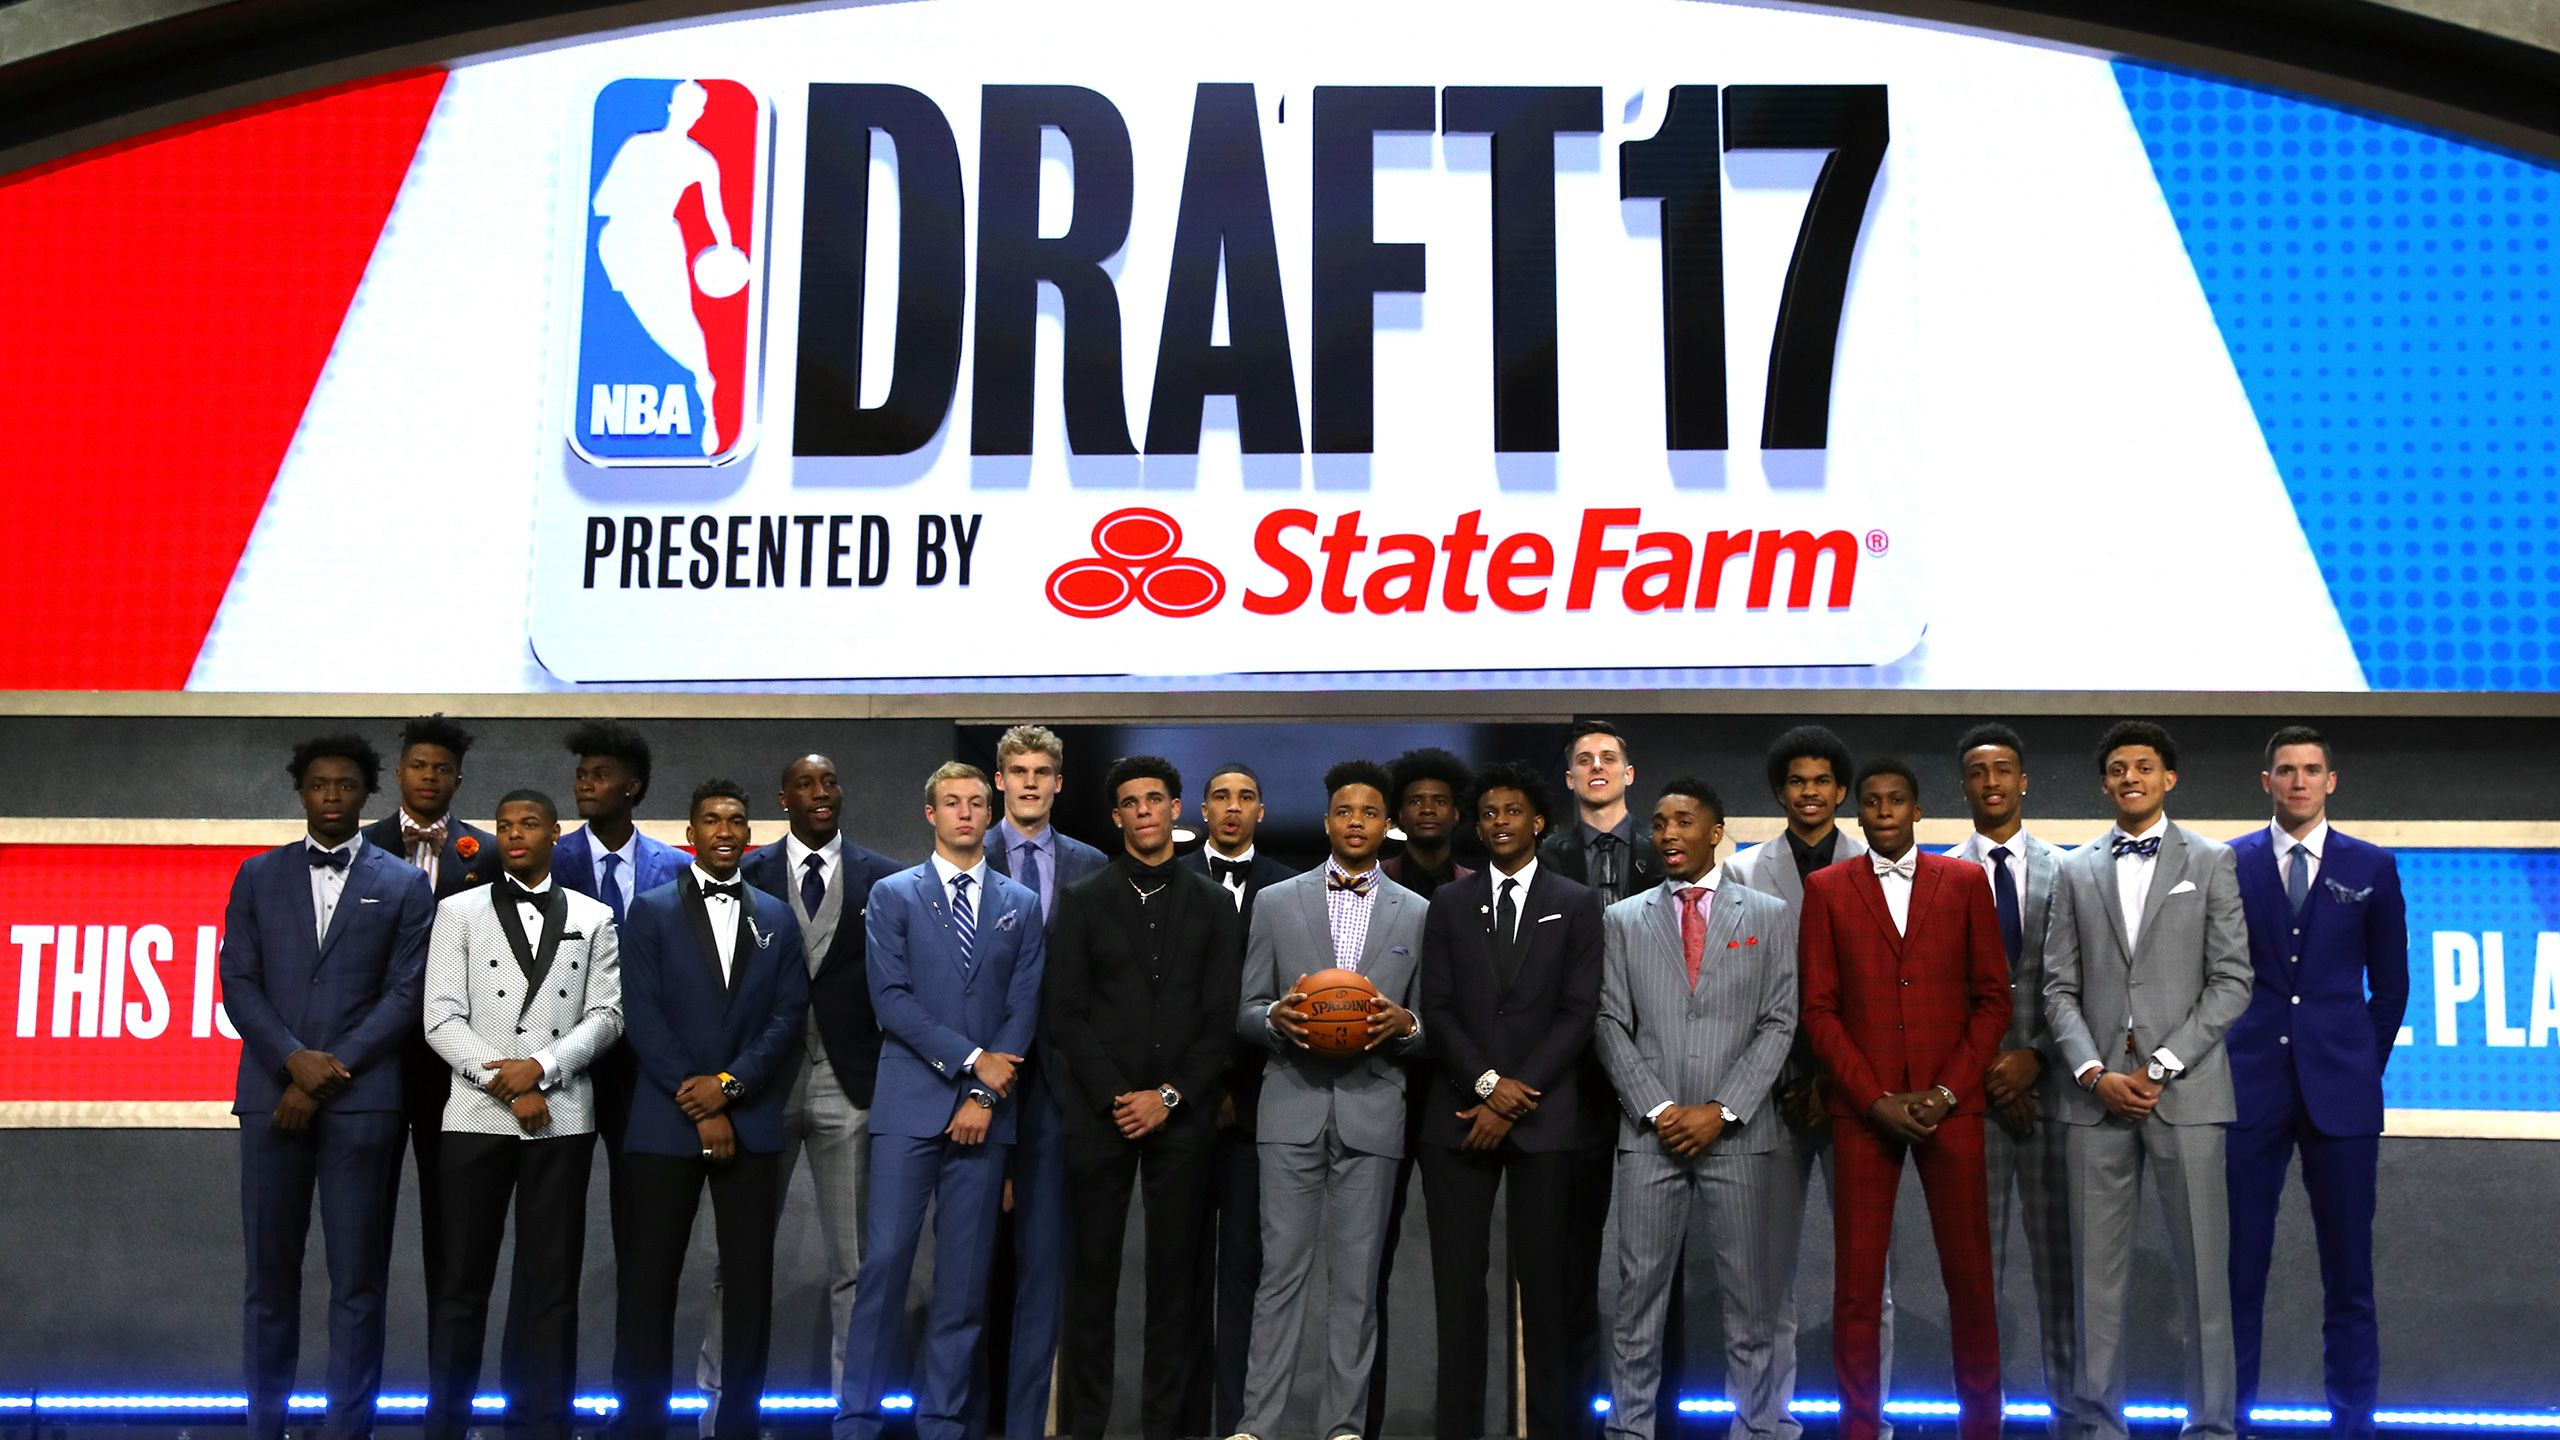 NBA Draft 2017 Presented by State Farm